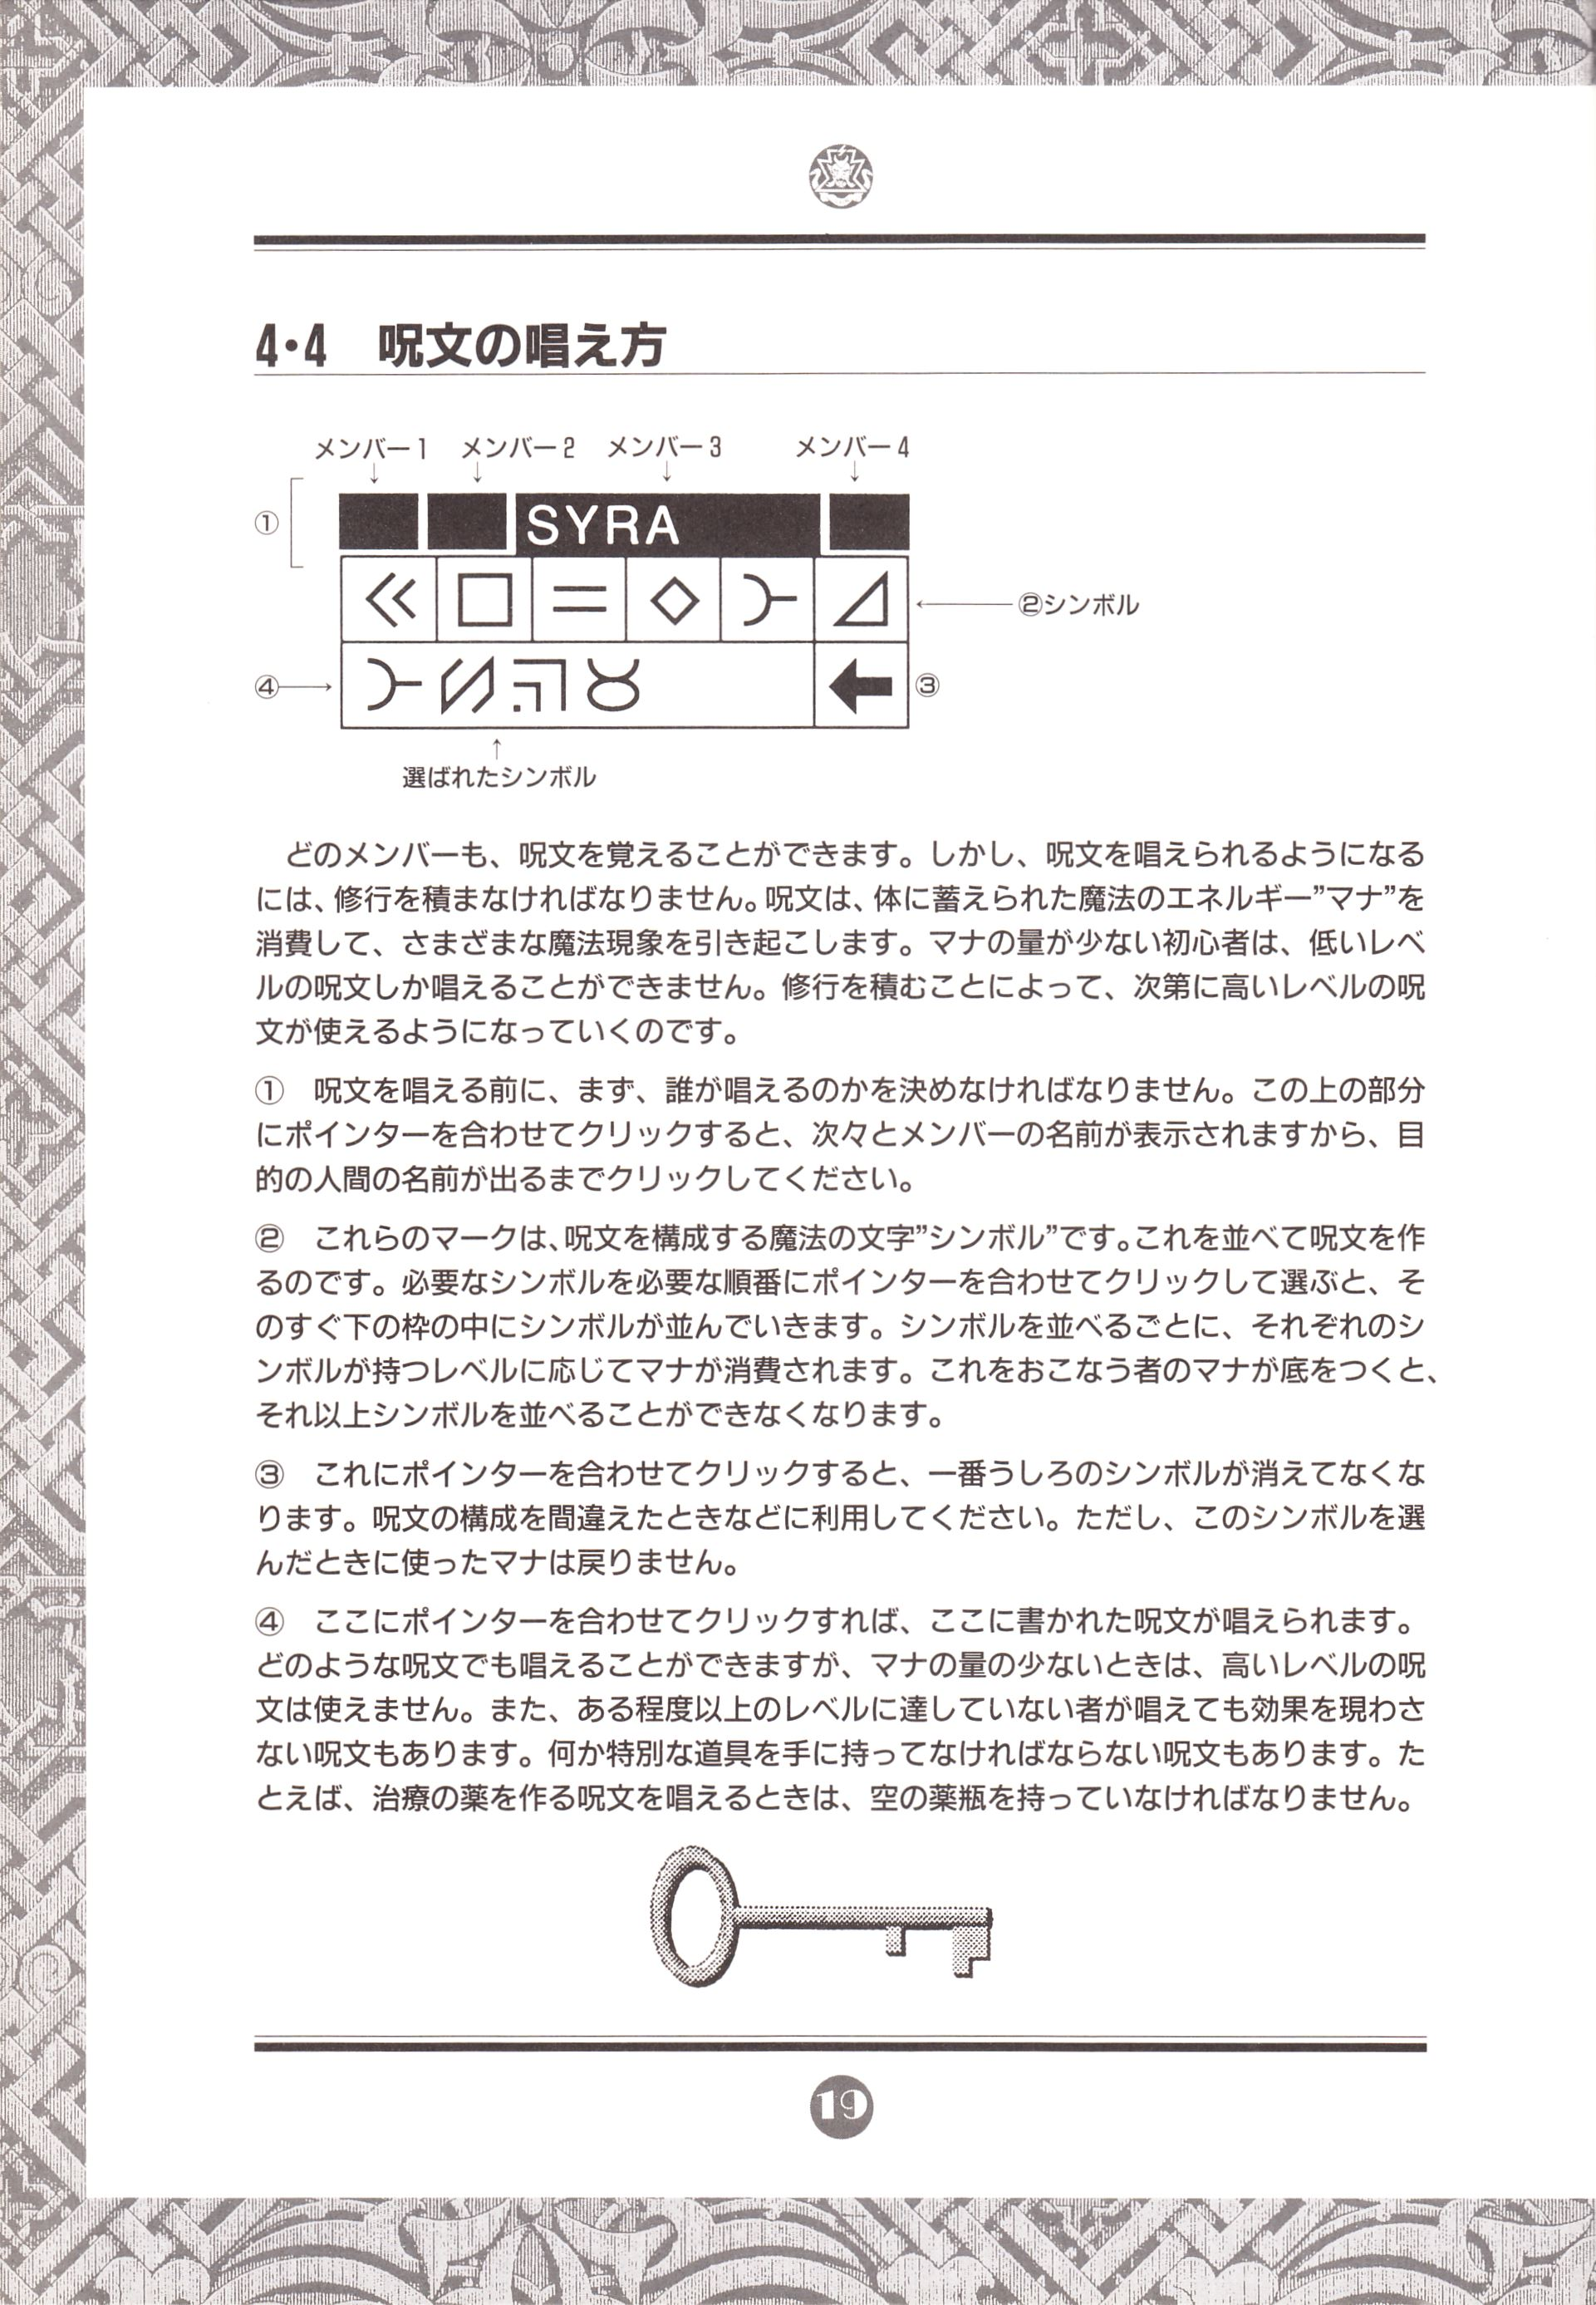 Game - Chaos Strikes Back - JP - PC-9801 - 3-5-inch - An Operation Manual - Page 022 - Scan